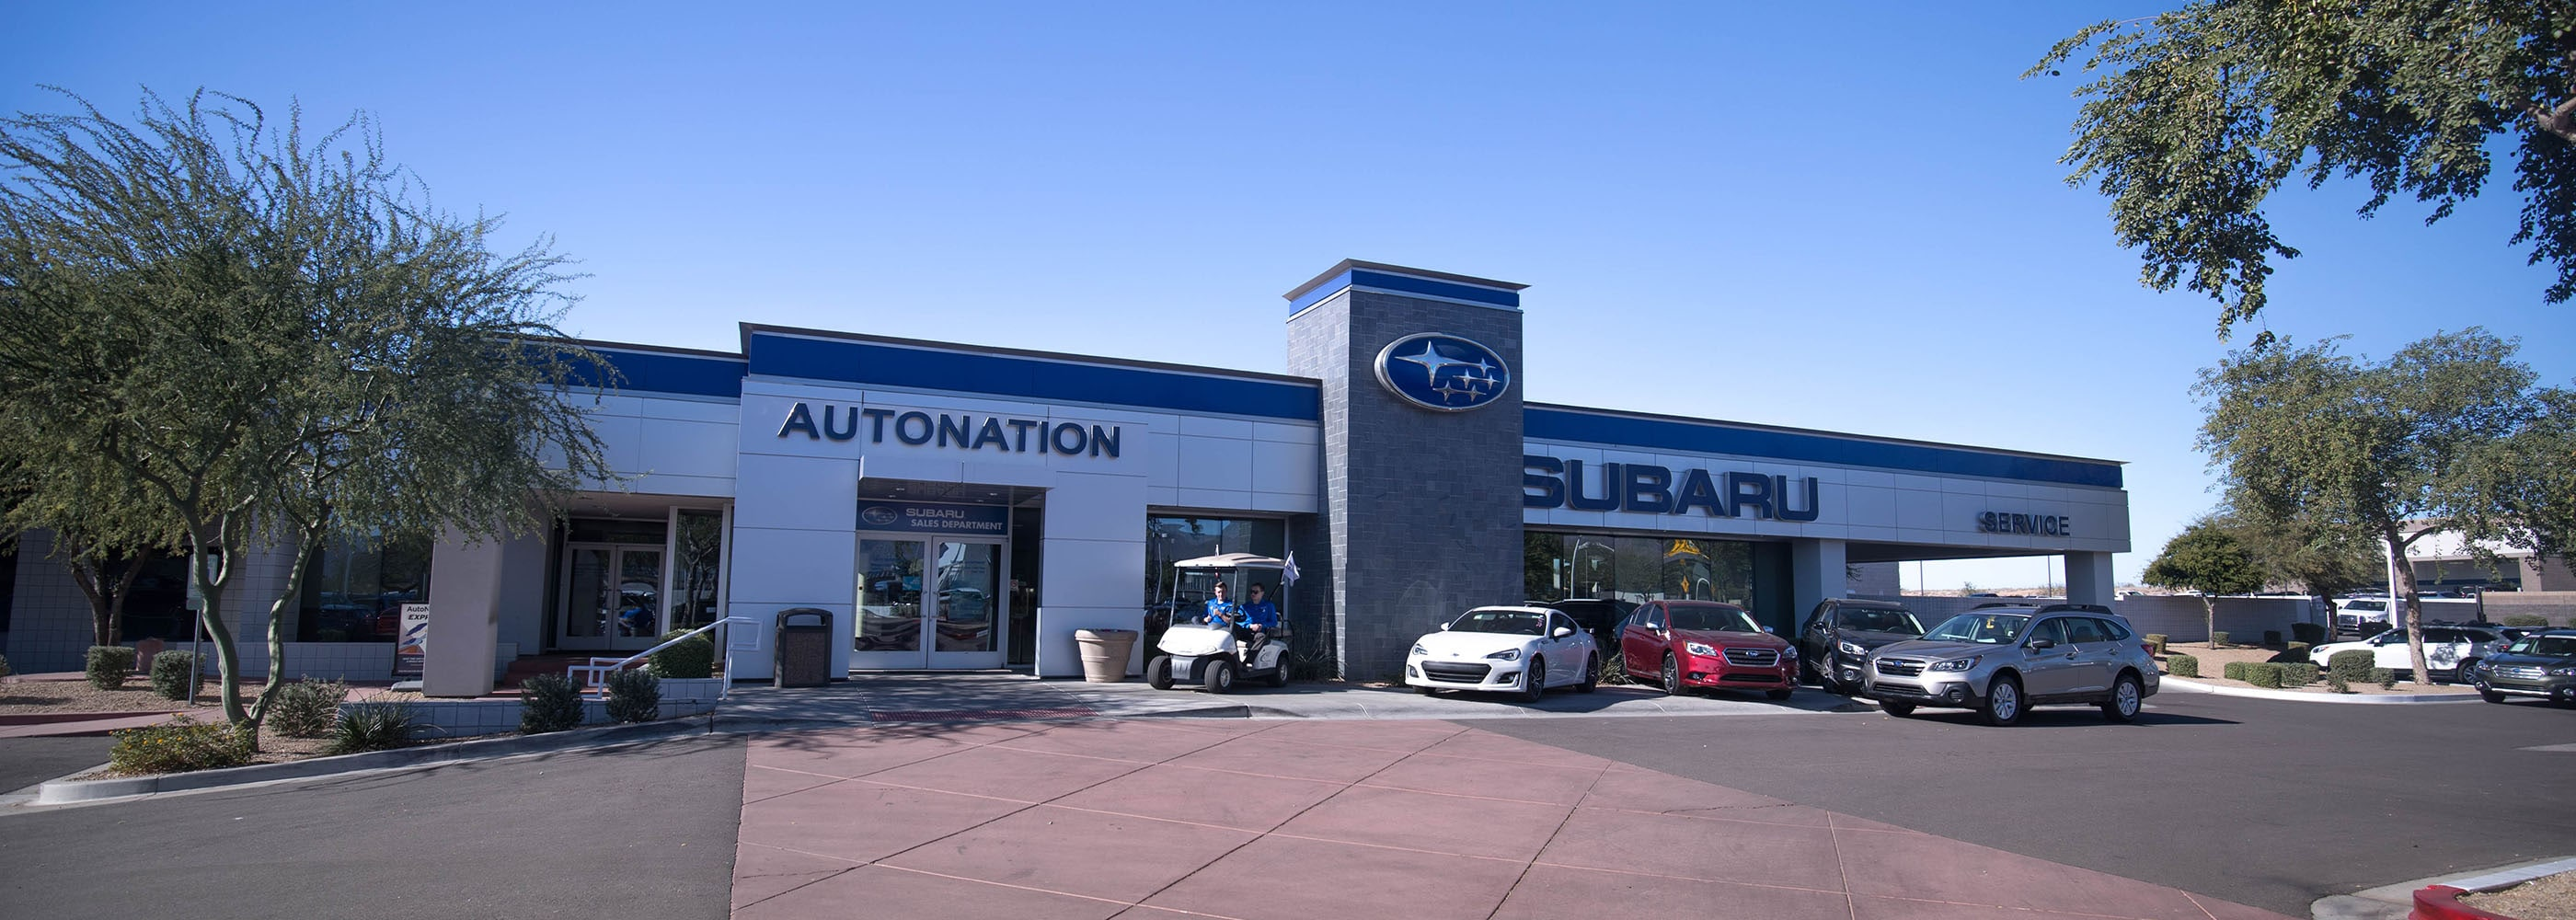 Autonation Subaru Dealer >> Scottsdale Subaru Dealer Autonation Subaru Scottsdale